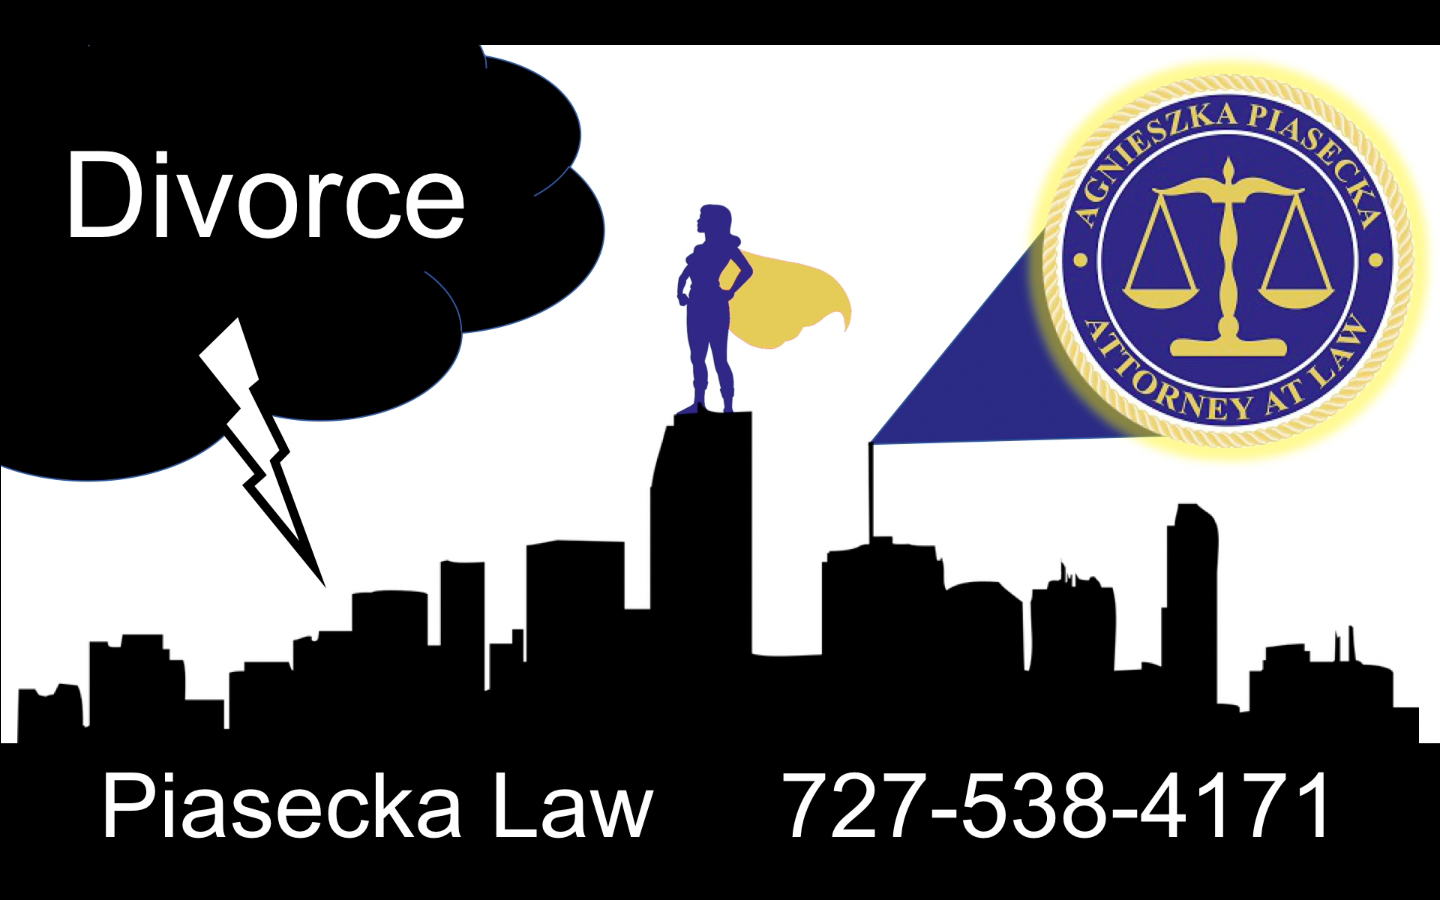 Divorce Clearwater 727-538-4171 Piasecka Law